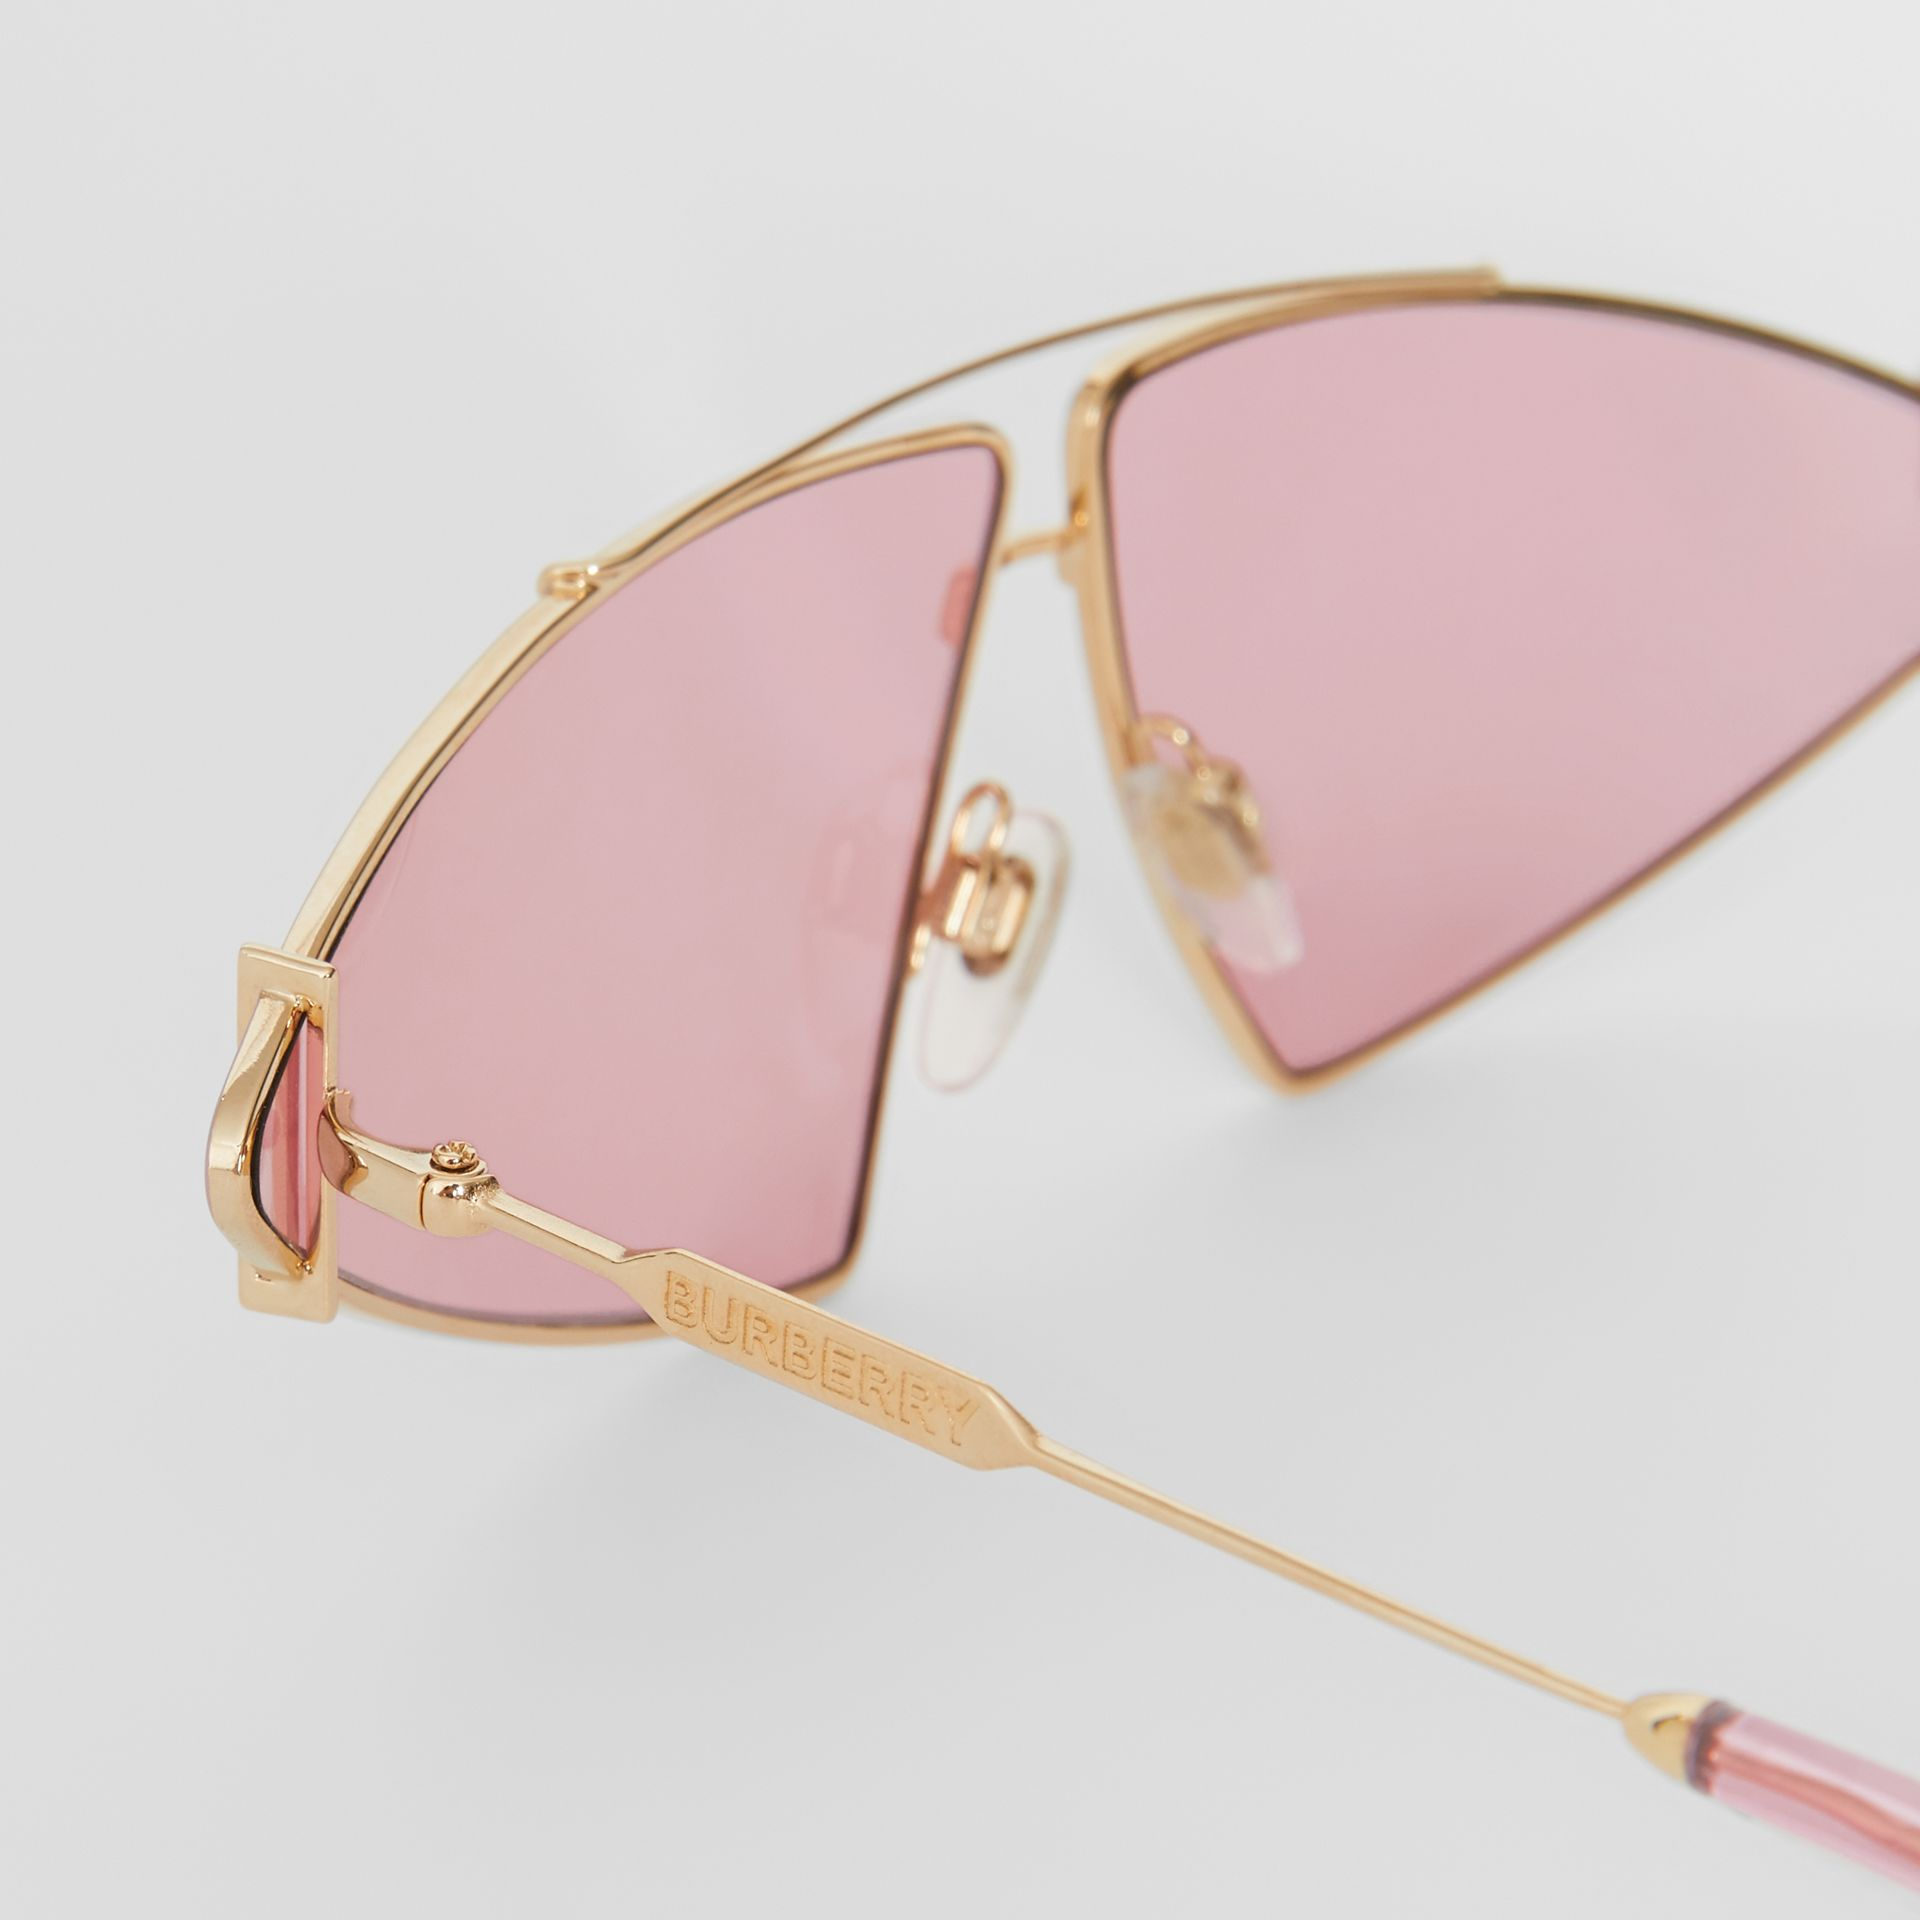 Gold-plated Triangular Frame Sunglasses in Blush Pink - Women | Burberry United Kingdom - gallery image 1